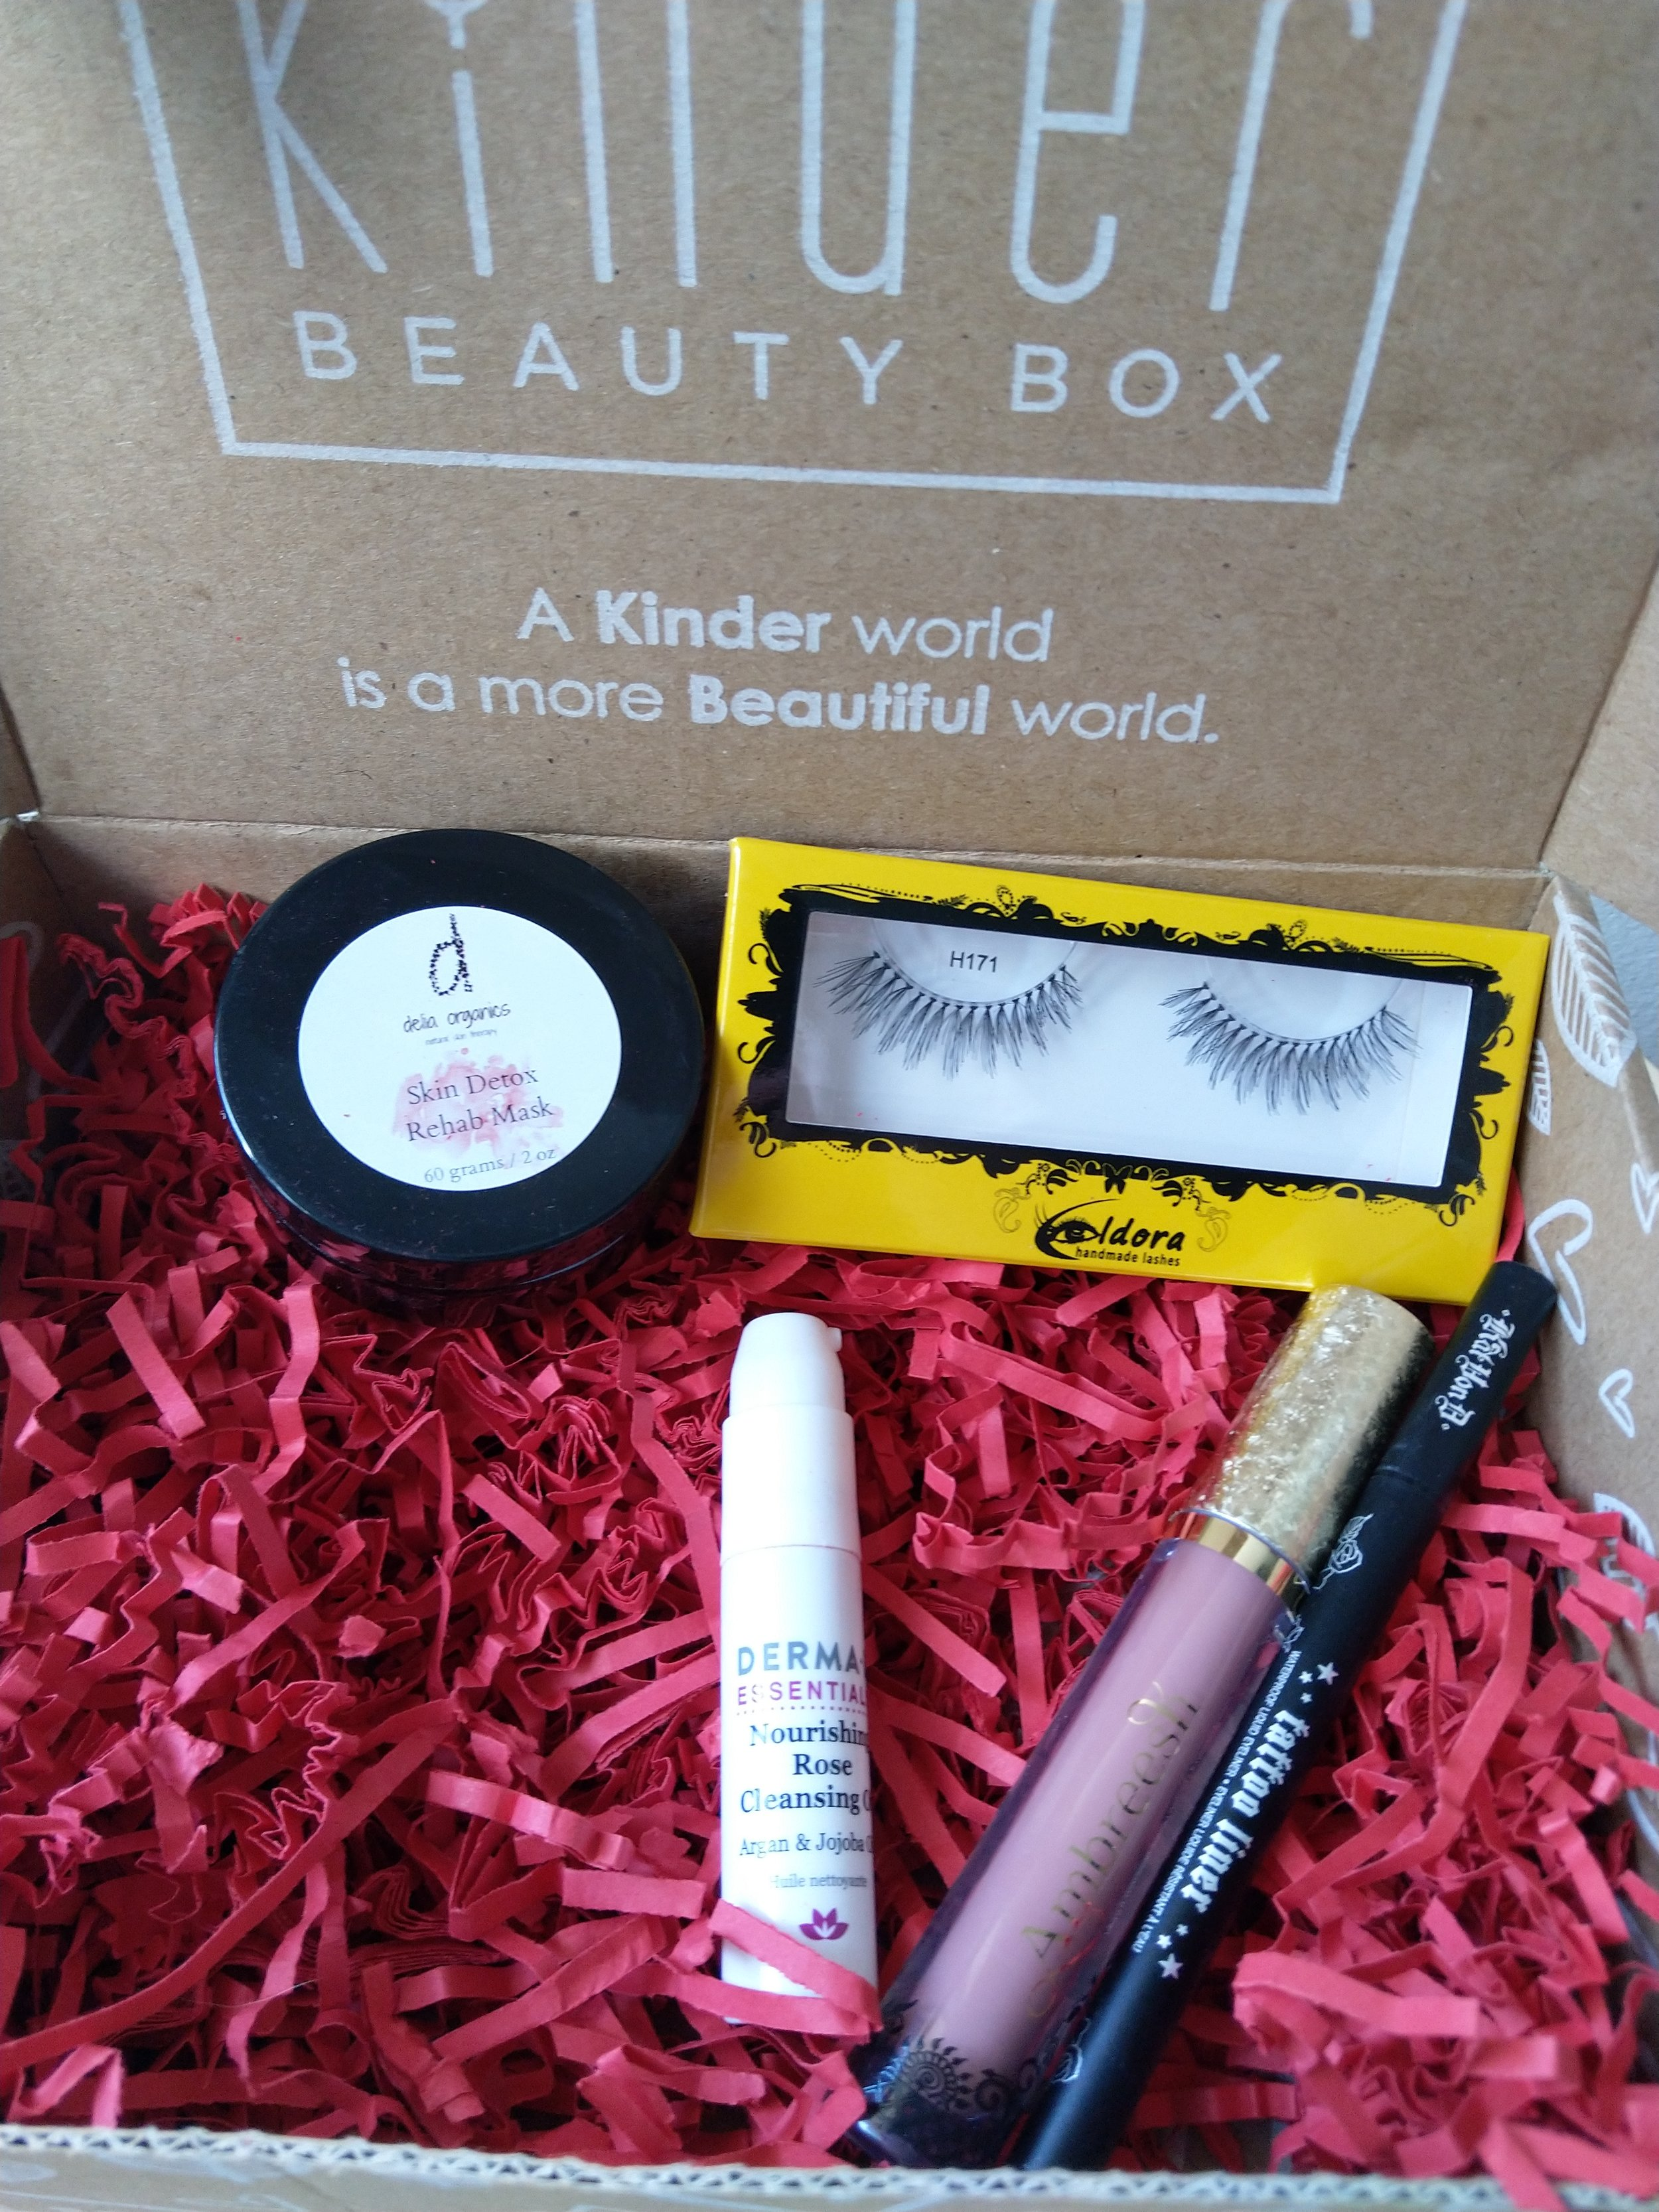 Image: Kinder Beauty Box / Author's own